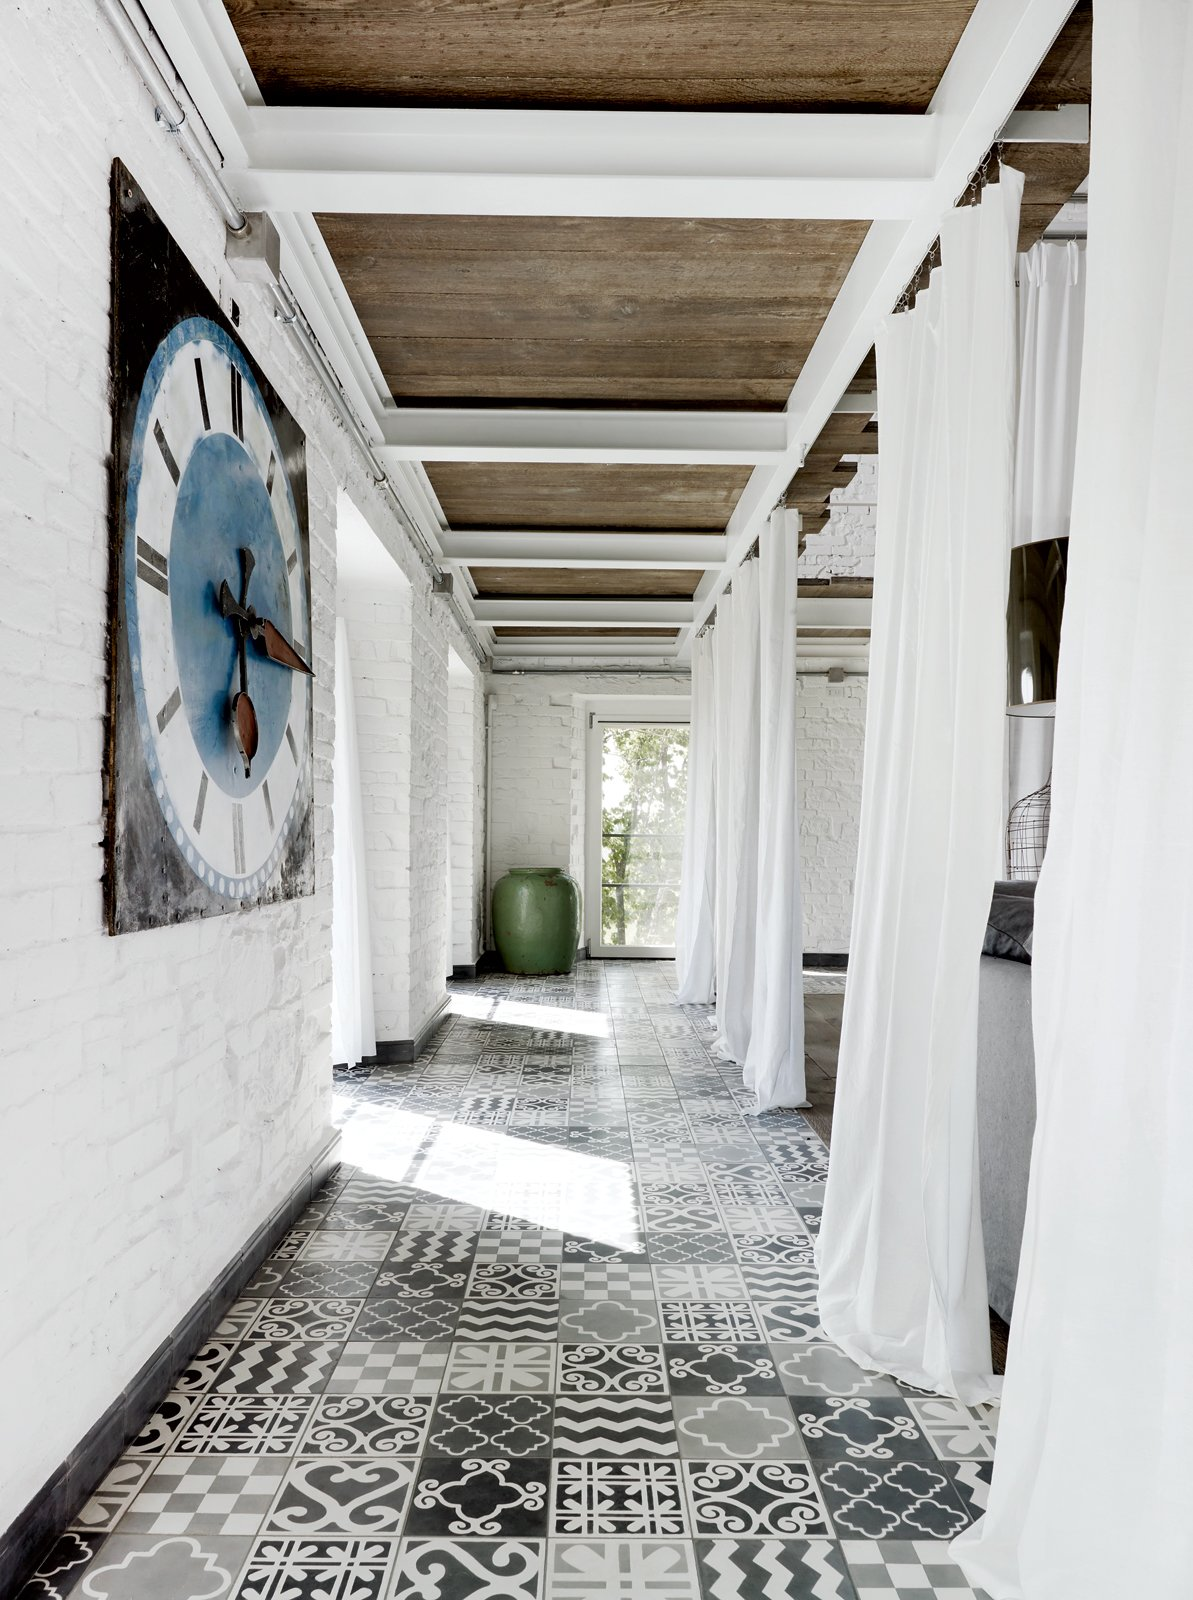 A carpet of custom tile created by Navone punctuates a corridor on the first floor. Tagged: Hallway and Ceramic Tile Floor.  Photo 6 of 13 in 12 Creative Ways to Use Tile in Your Home from Paola Navone's Industrial Style Renovation in Italy